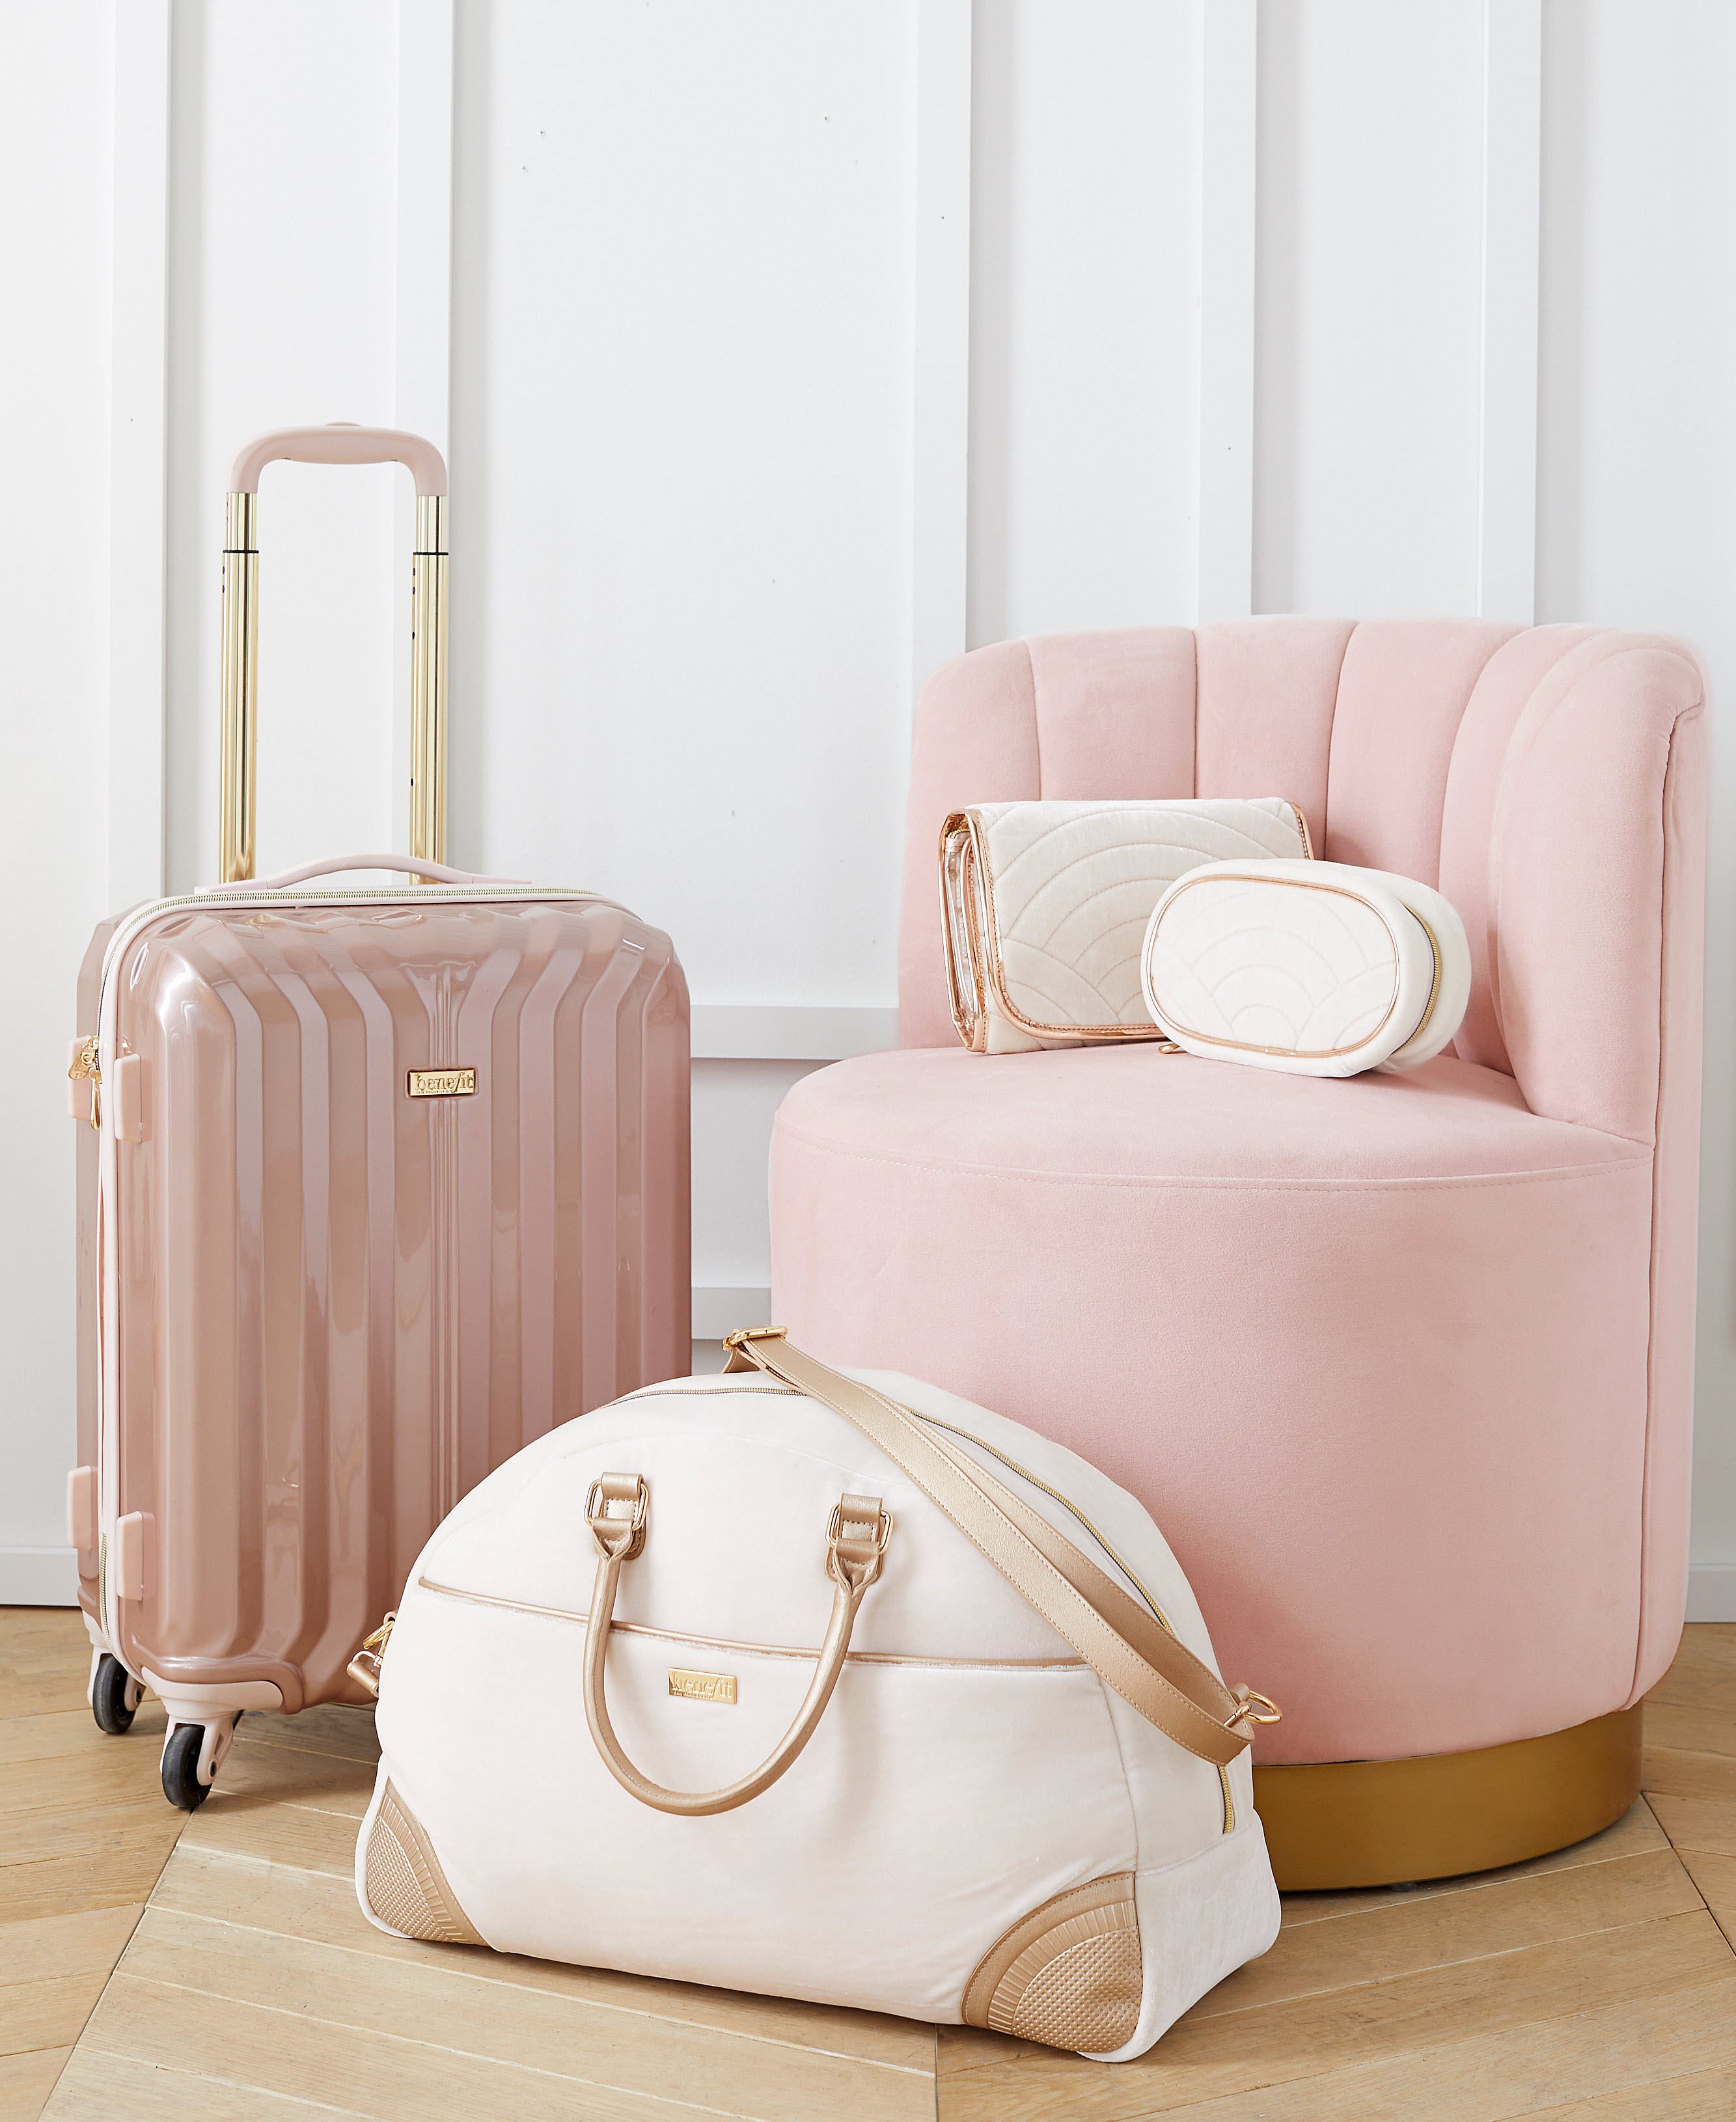 Benefit x PB Teen Luggage